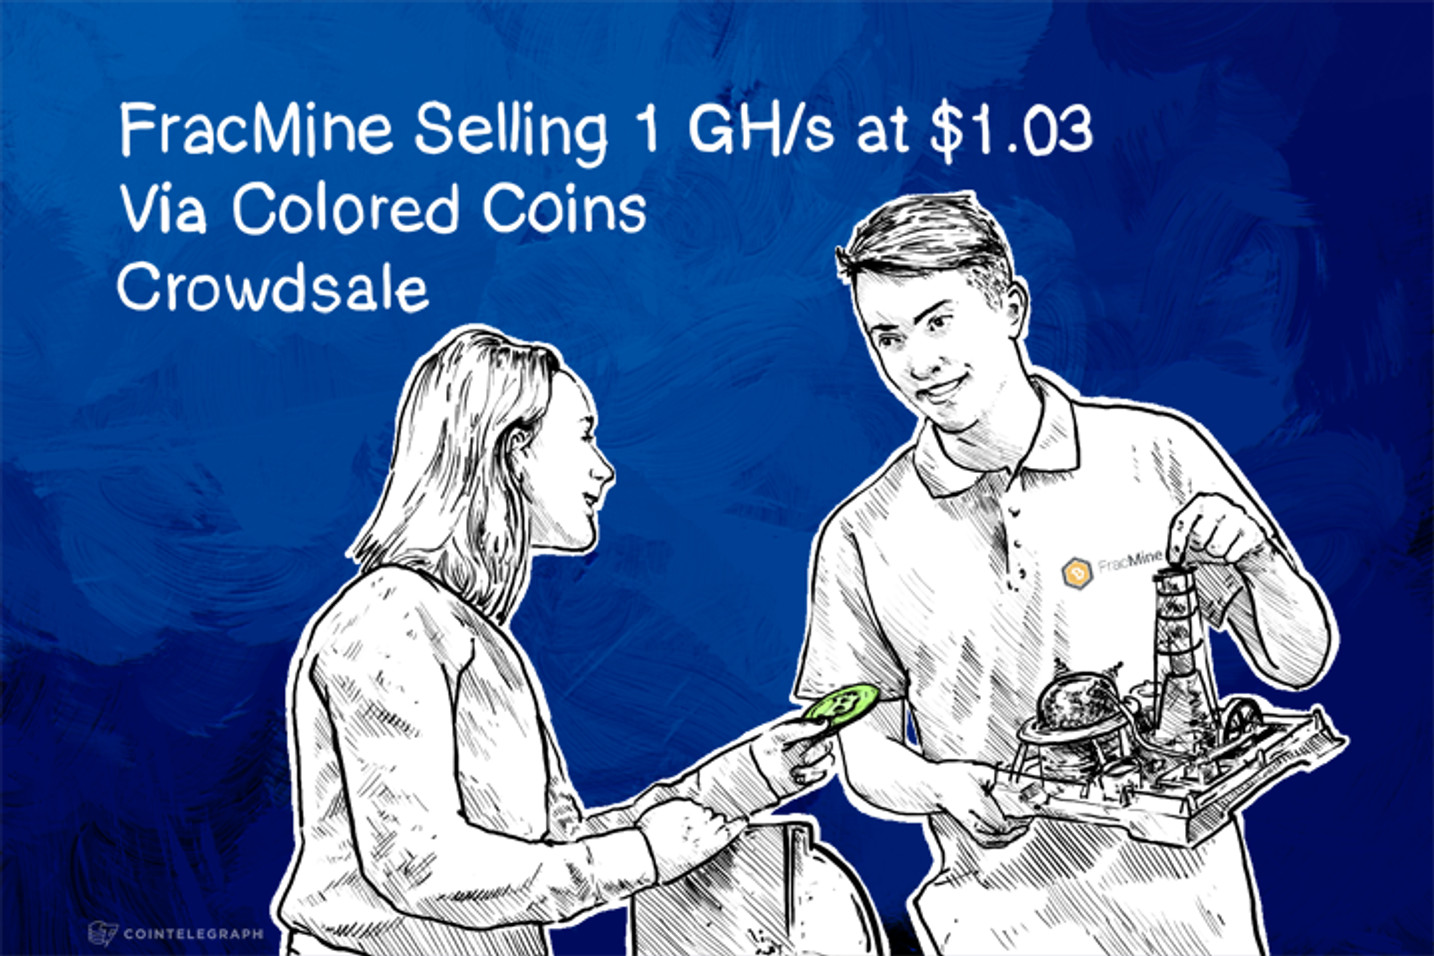 FracMine Selling 1 GH/s at $1.03 Via Colored Coins Crowdsale